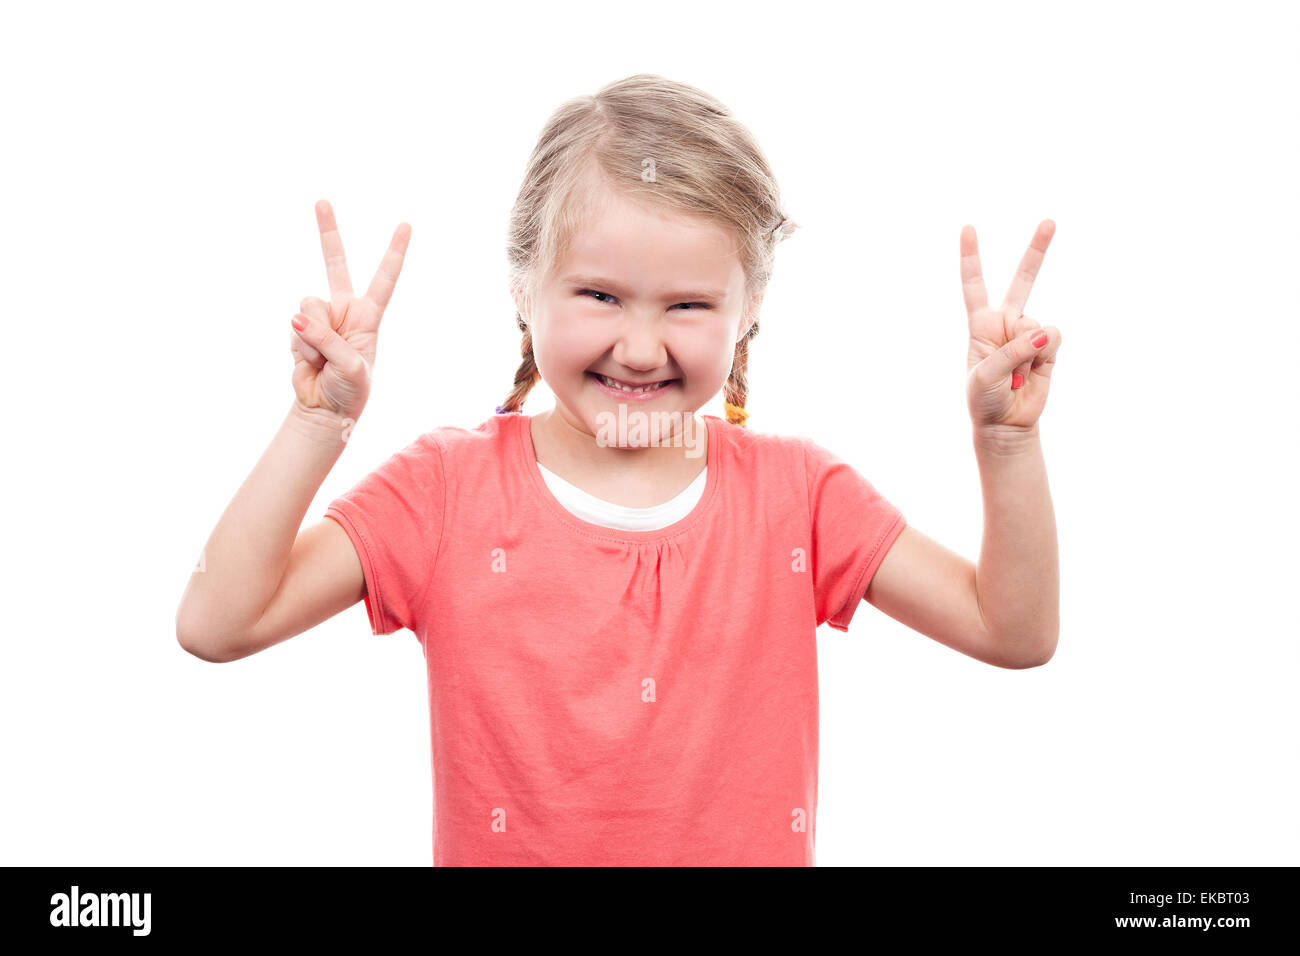 cute girl showing victory sign Stock Photo